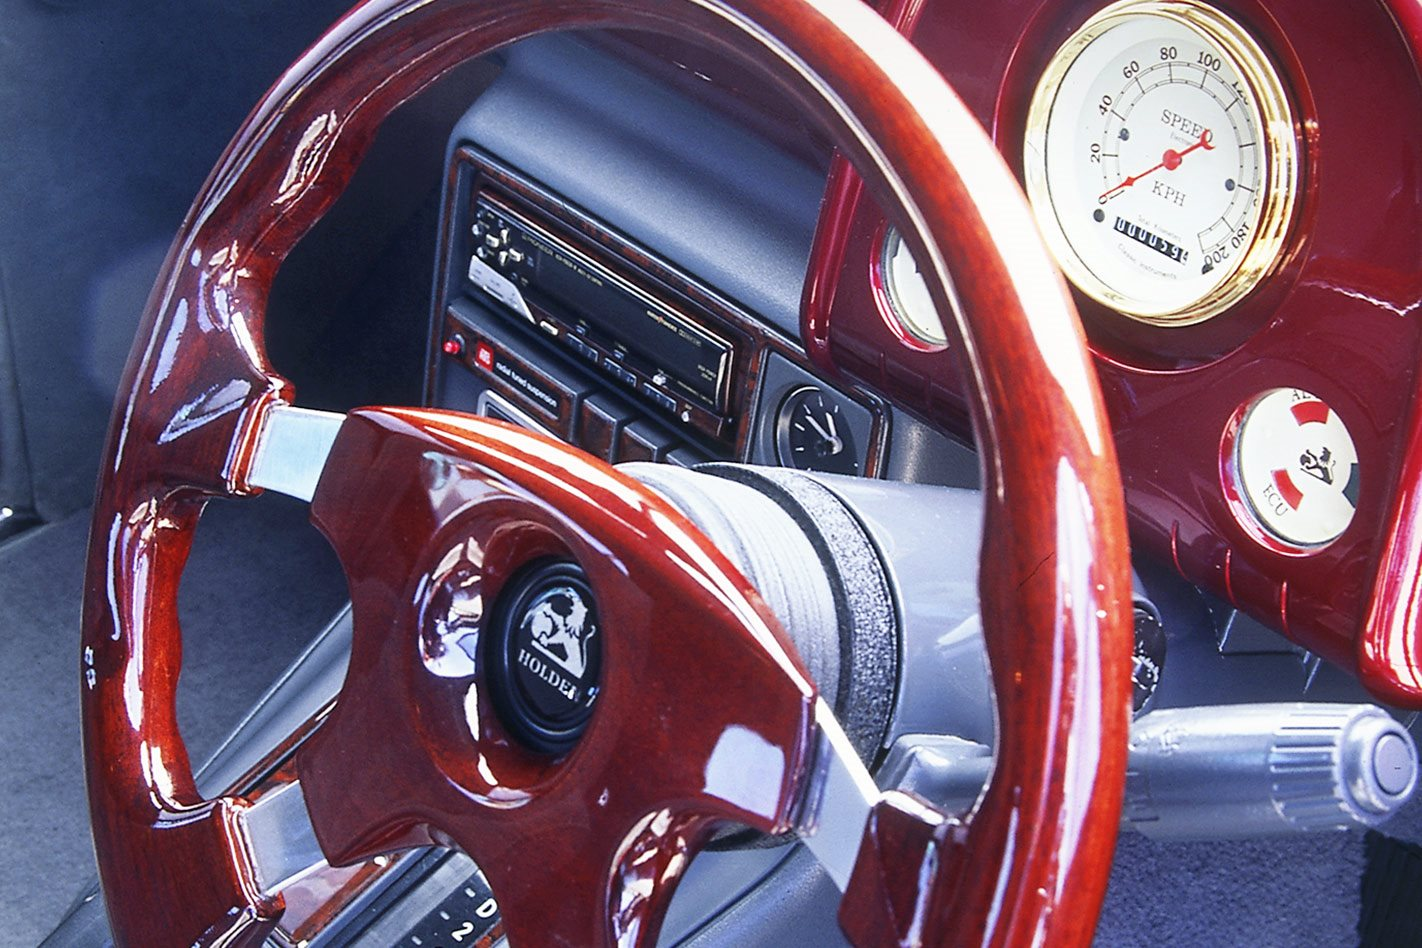 Holden FX steering wheel